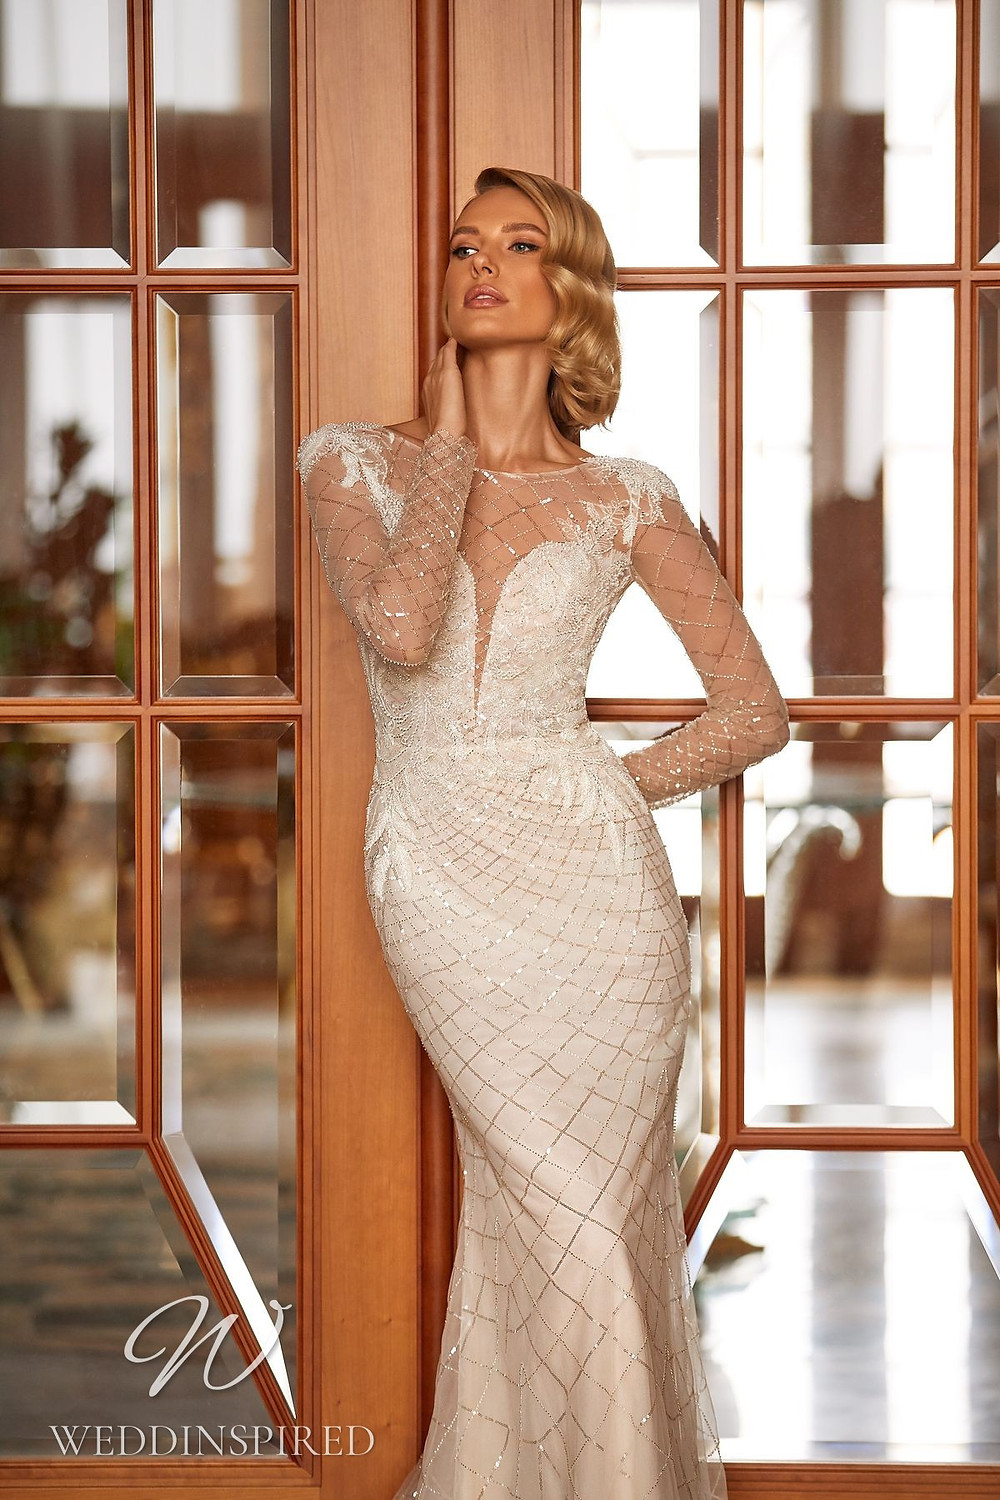 A Pollardi 2021 lace and tulle mermaid wedding dress with long sleeves